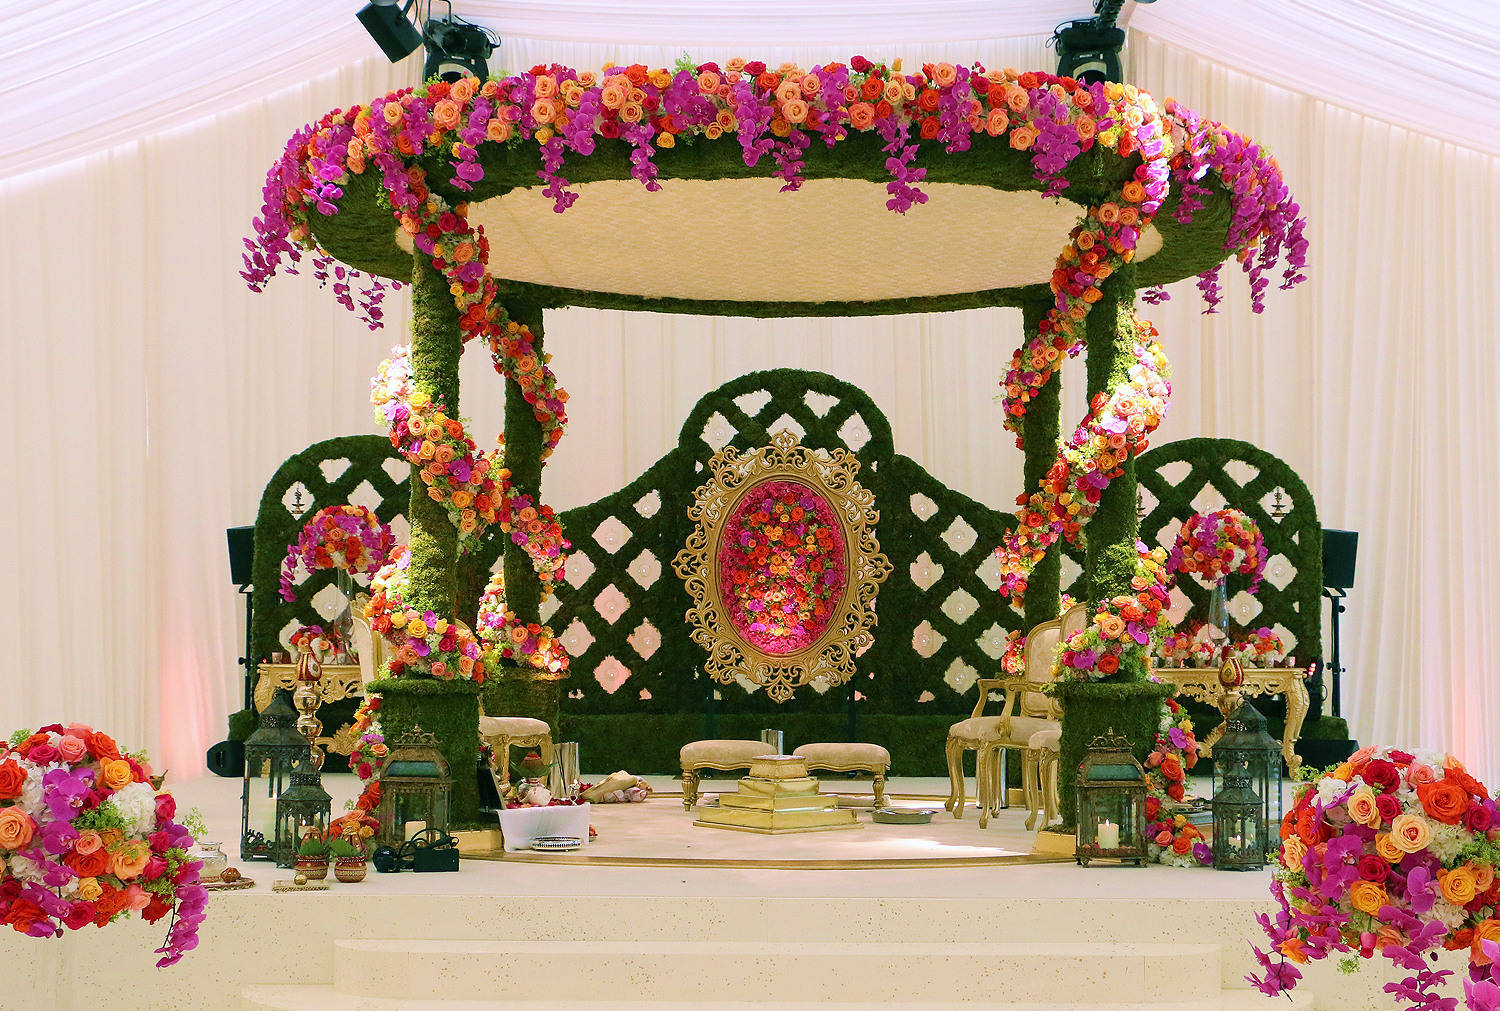 Nishali Floral Mandap. A four pillar Mandap made of moss with moss backdrop and flower filled floral frame